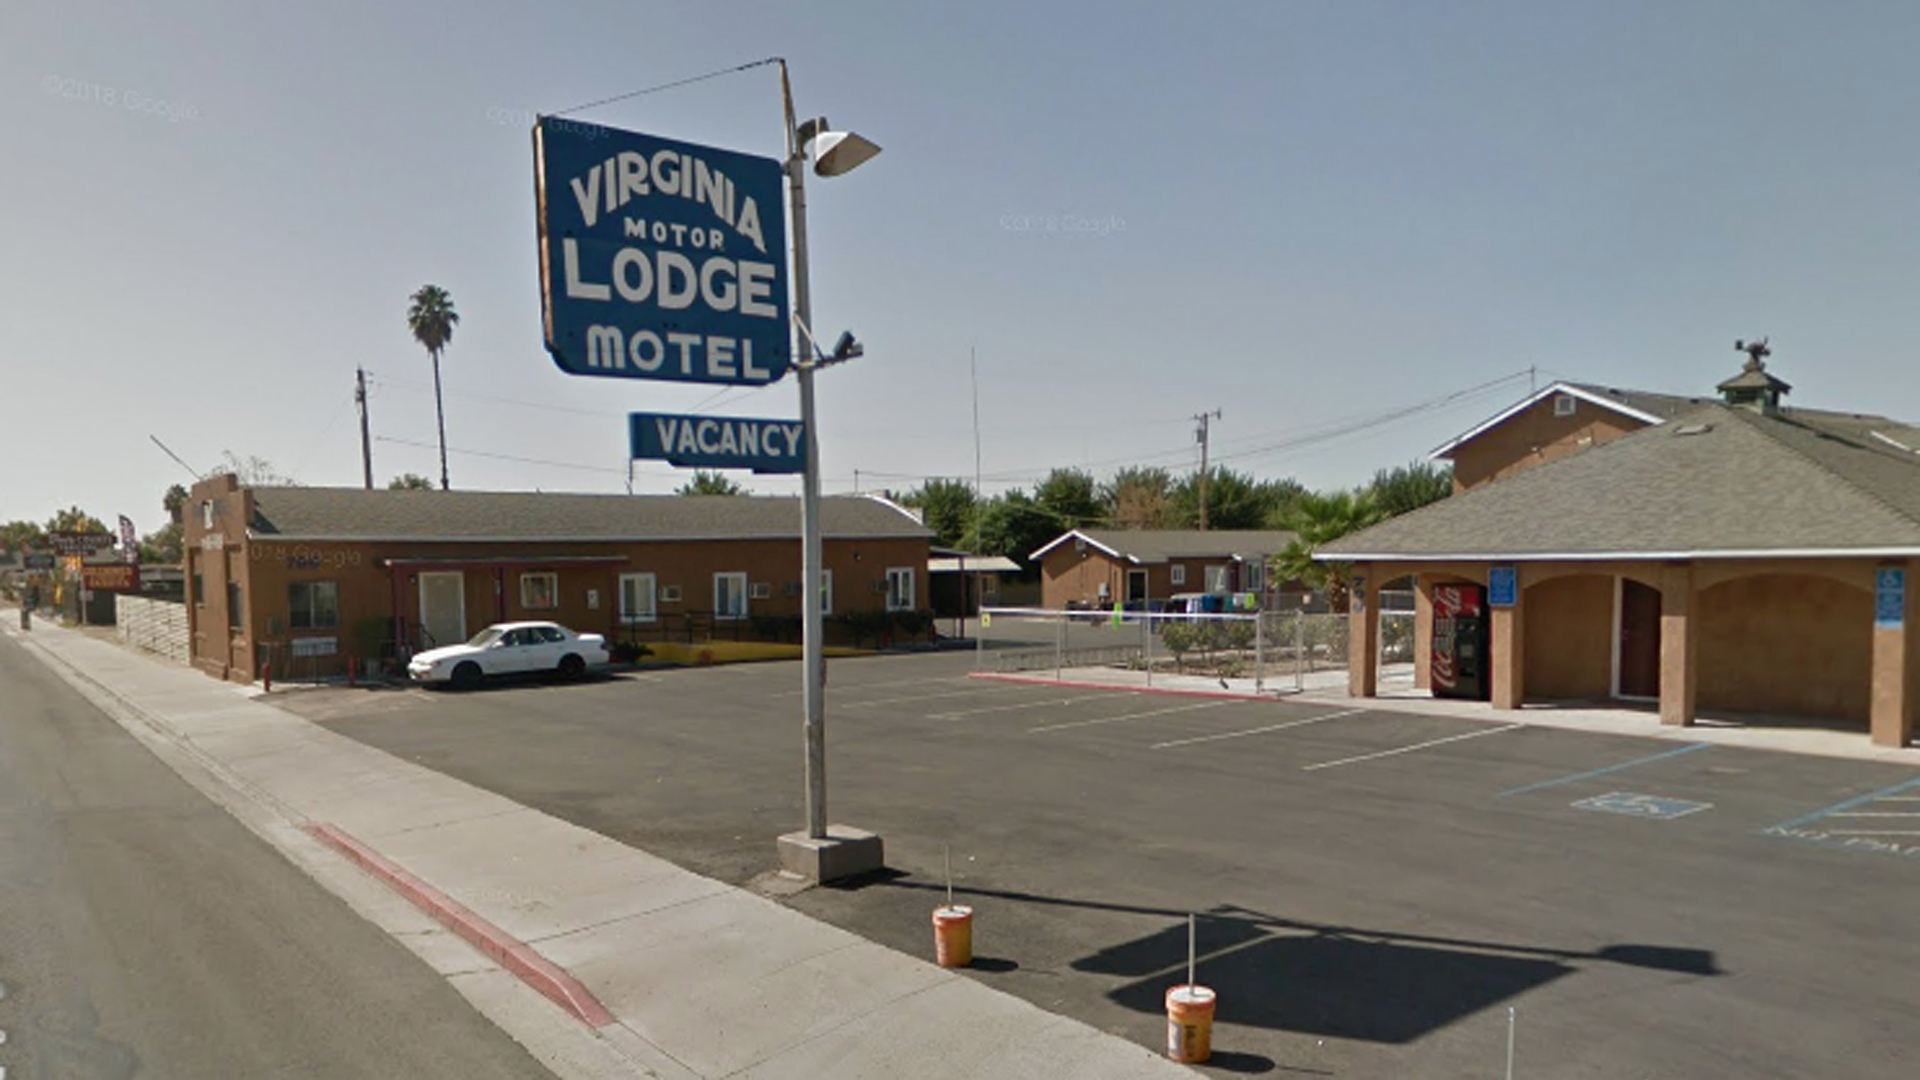 The Virginia Motor Lodge Motel in Tulare is seen in an image from Google Maps.